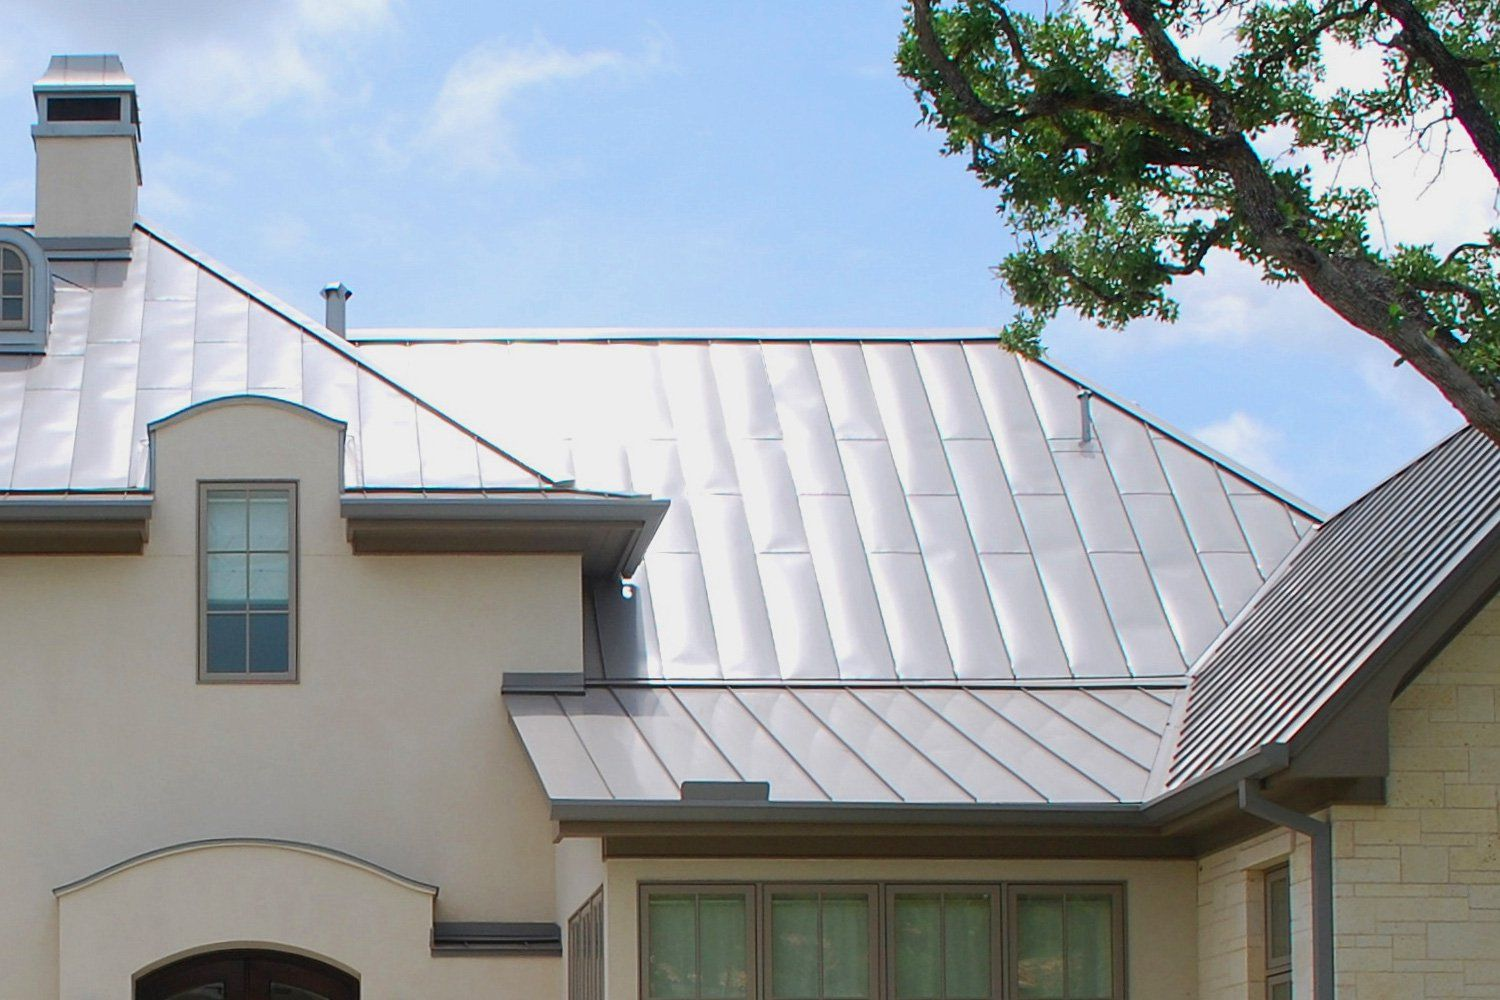 Having Gained Over 20 Years Experience In Roofing Design And Installation Core Roofing Owner Chris Davey Is Well Regar Cool Roof Metal Roof Roof Installation